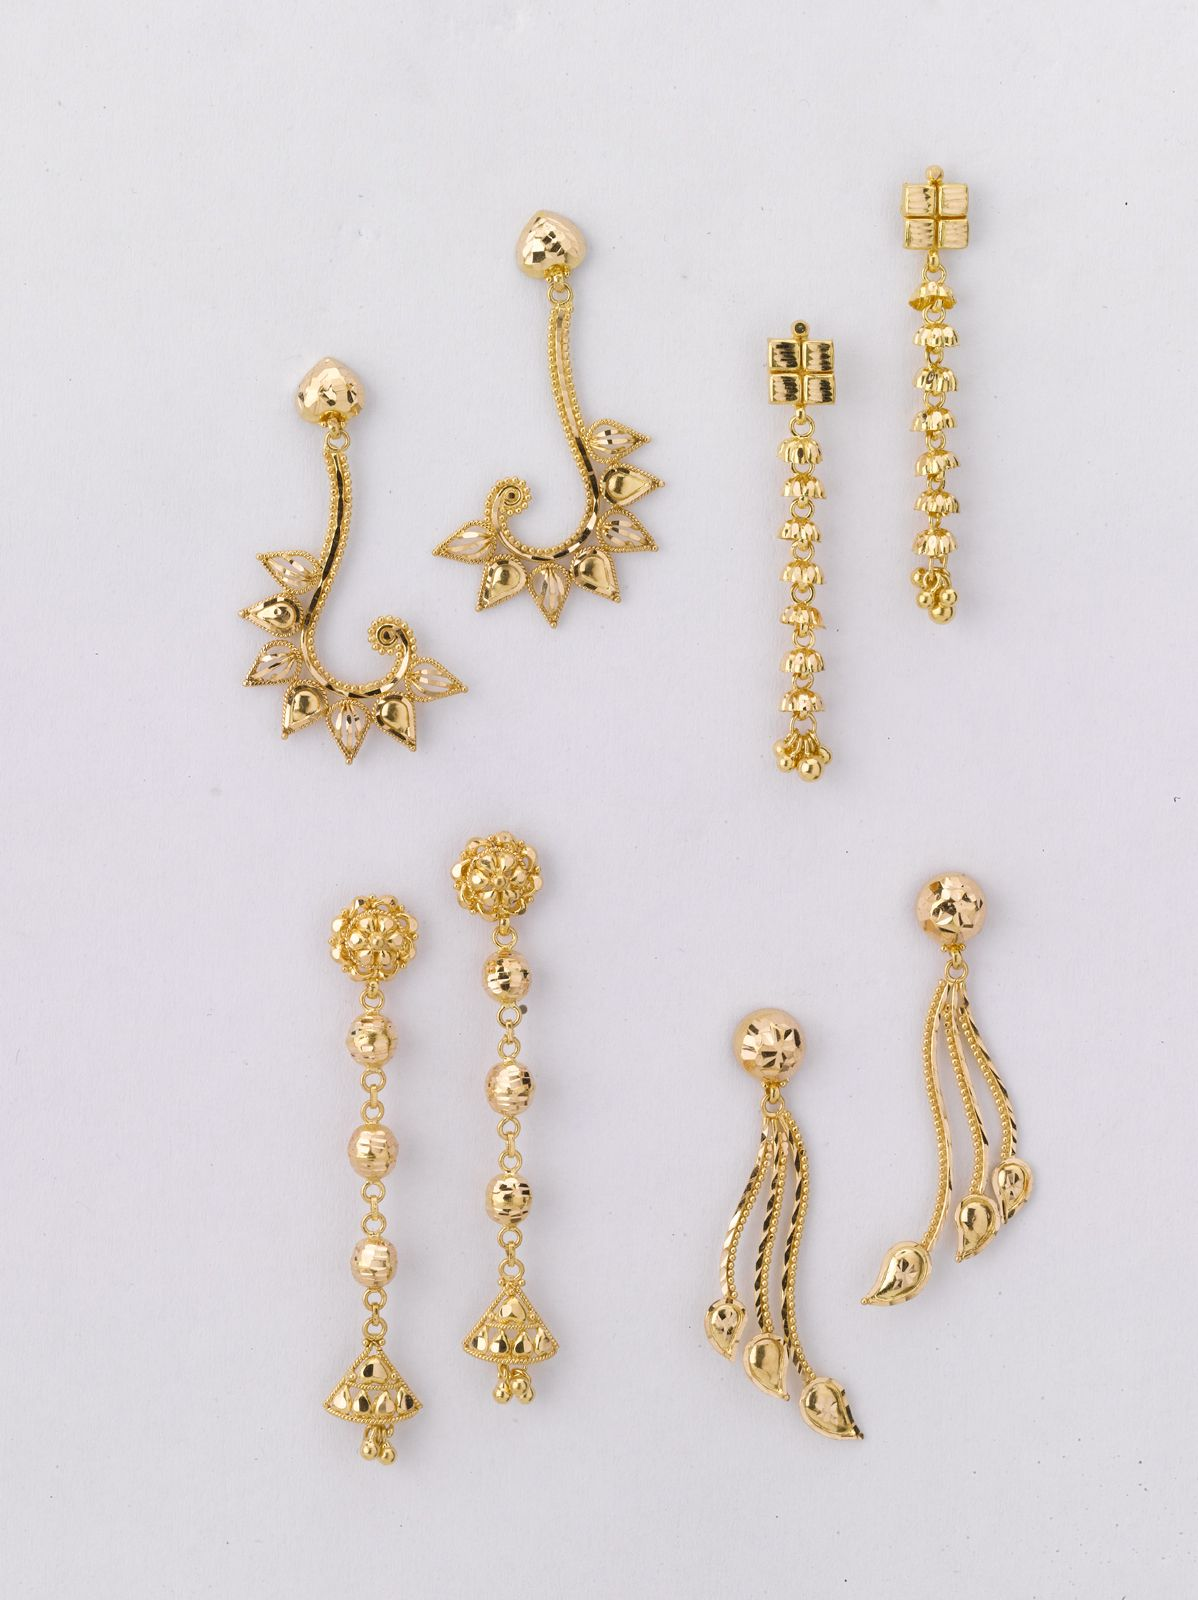 Earring Prices from left to right a gm Rs b